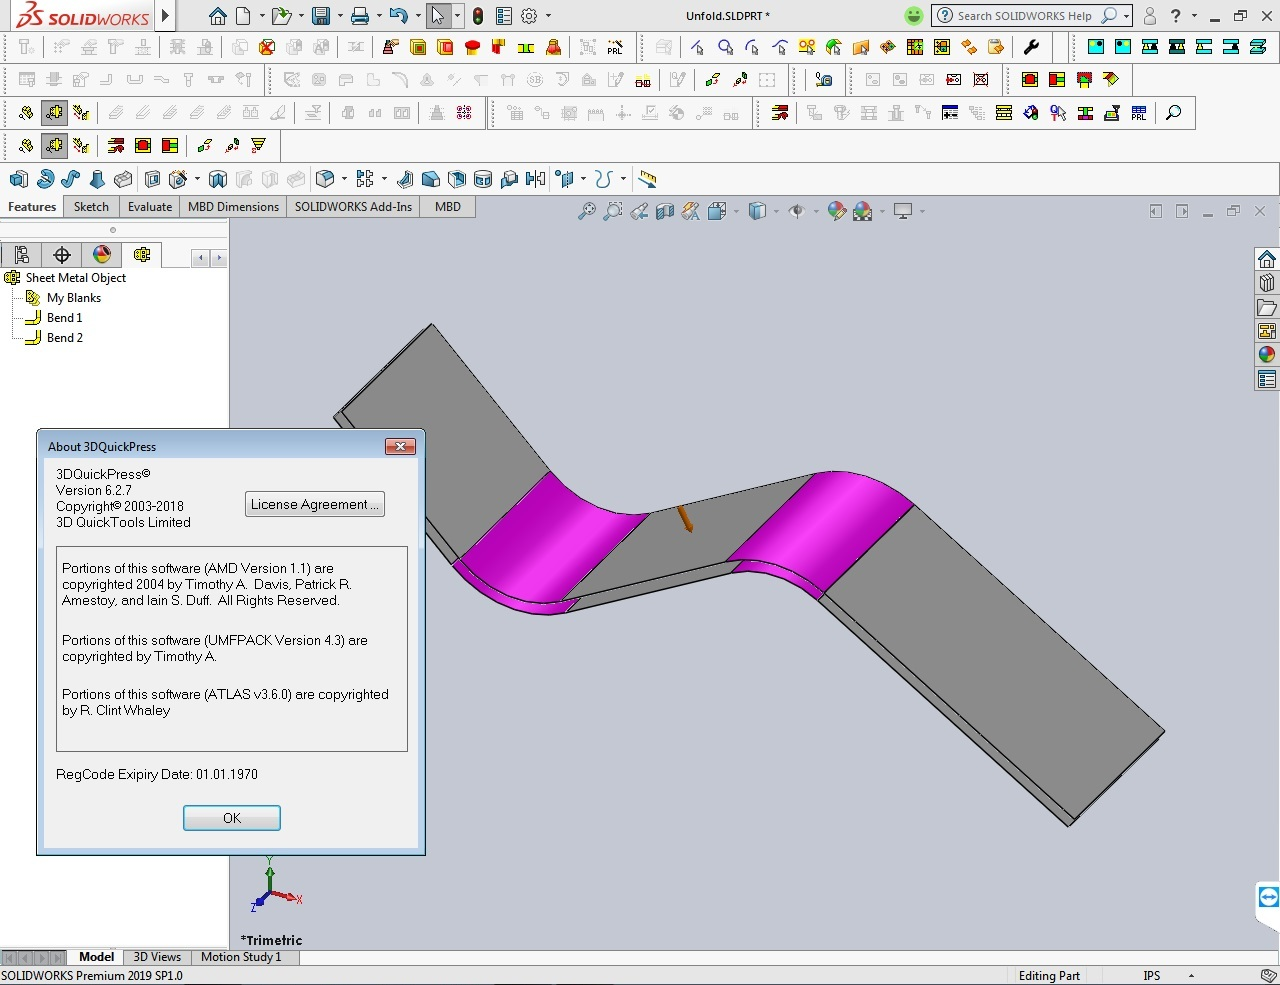 Working with 3DQuickPress v6.2.7 for SolidWorks 2012-2019 full